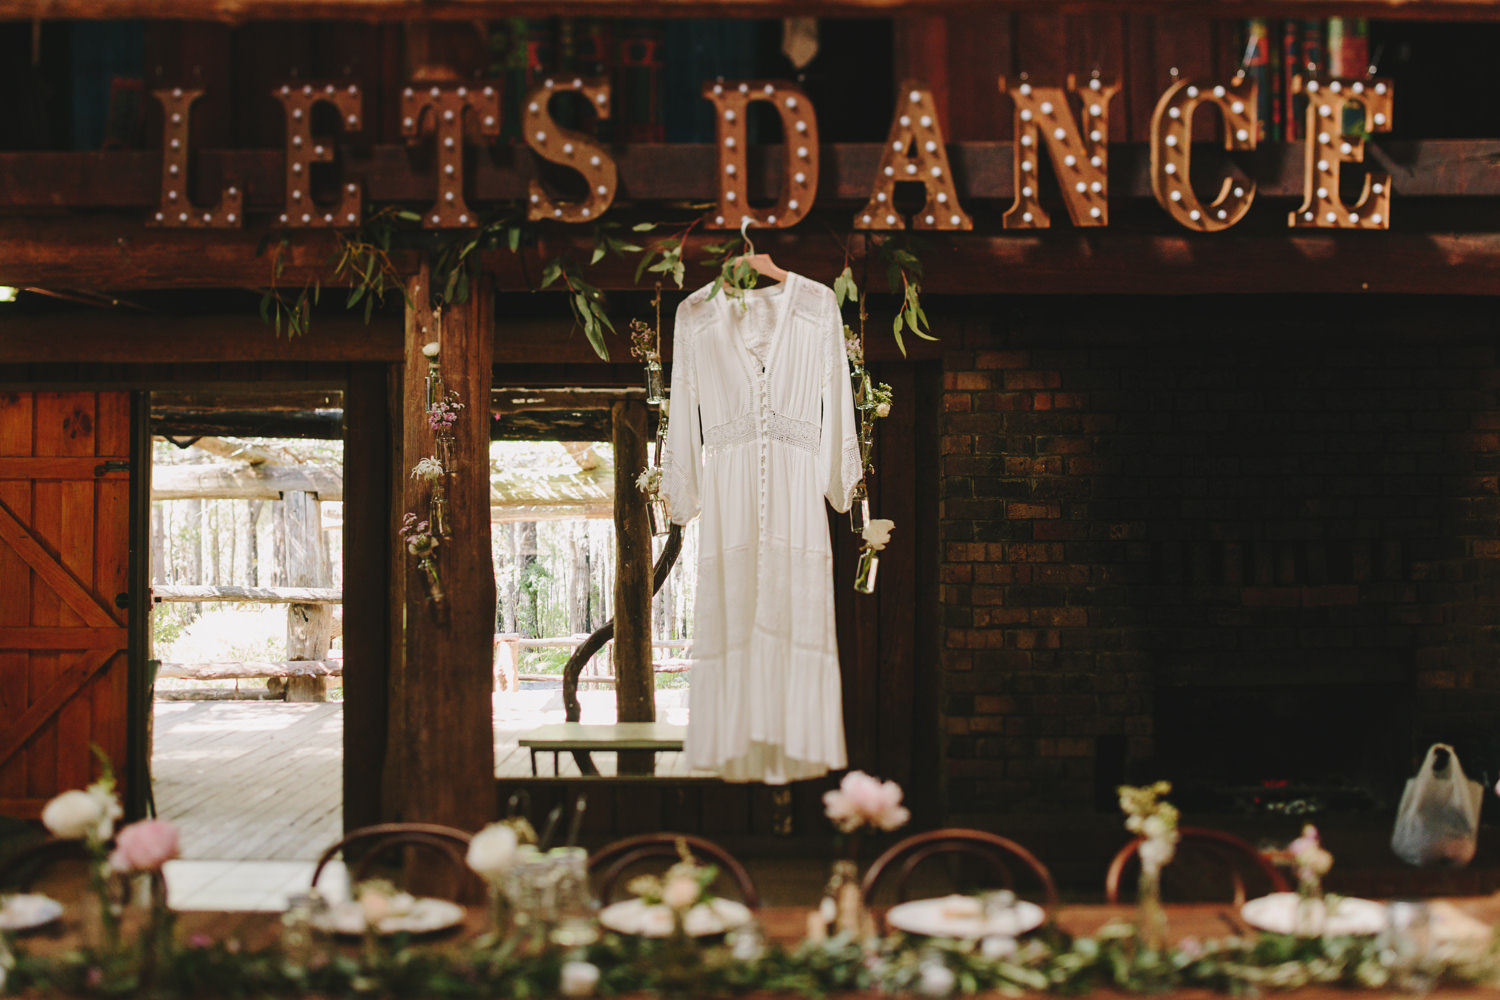 059-Barn_Wedding_Australia_Sam_Ting.jpg